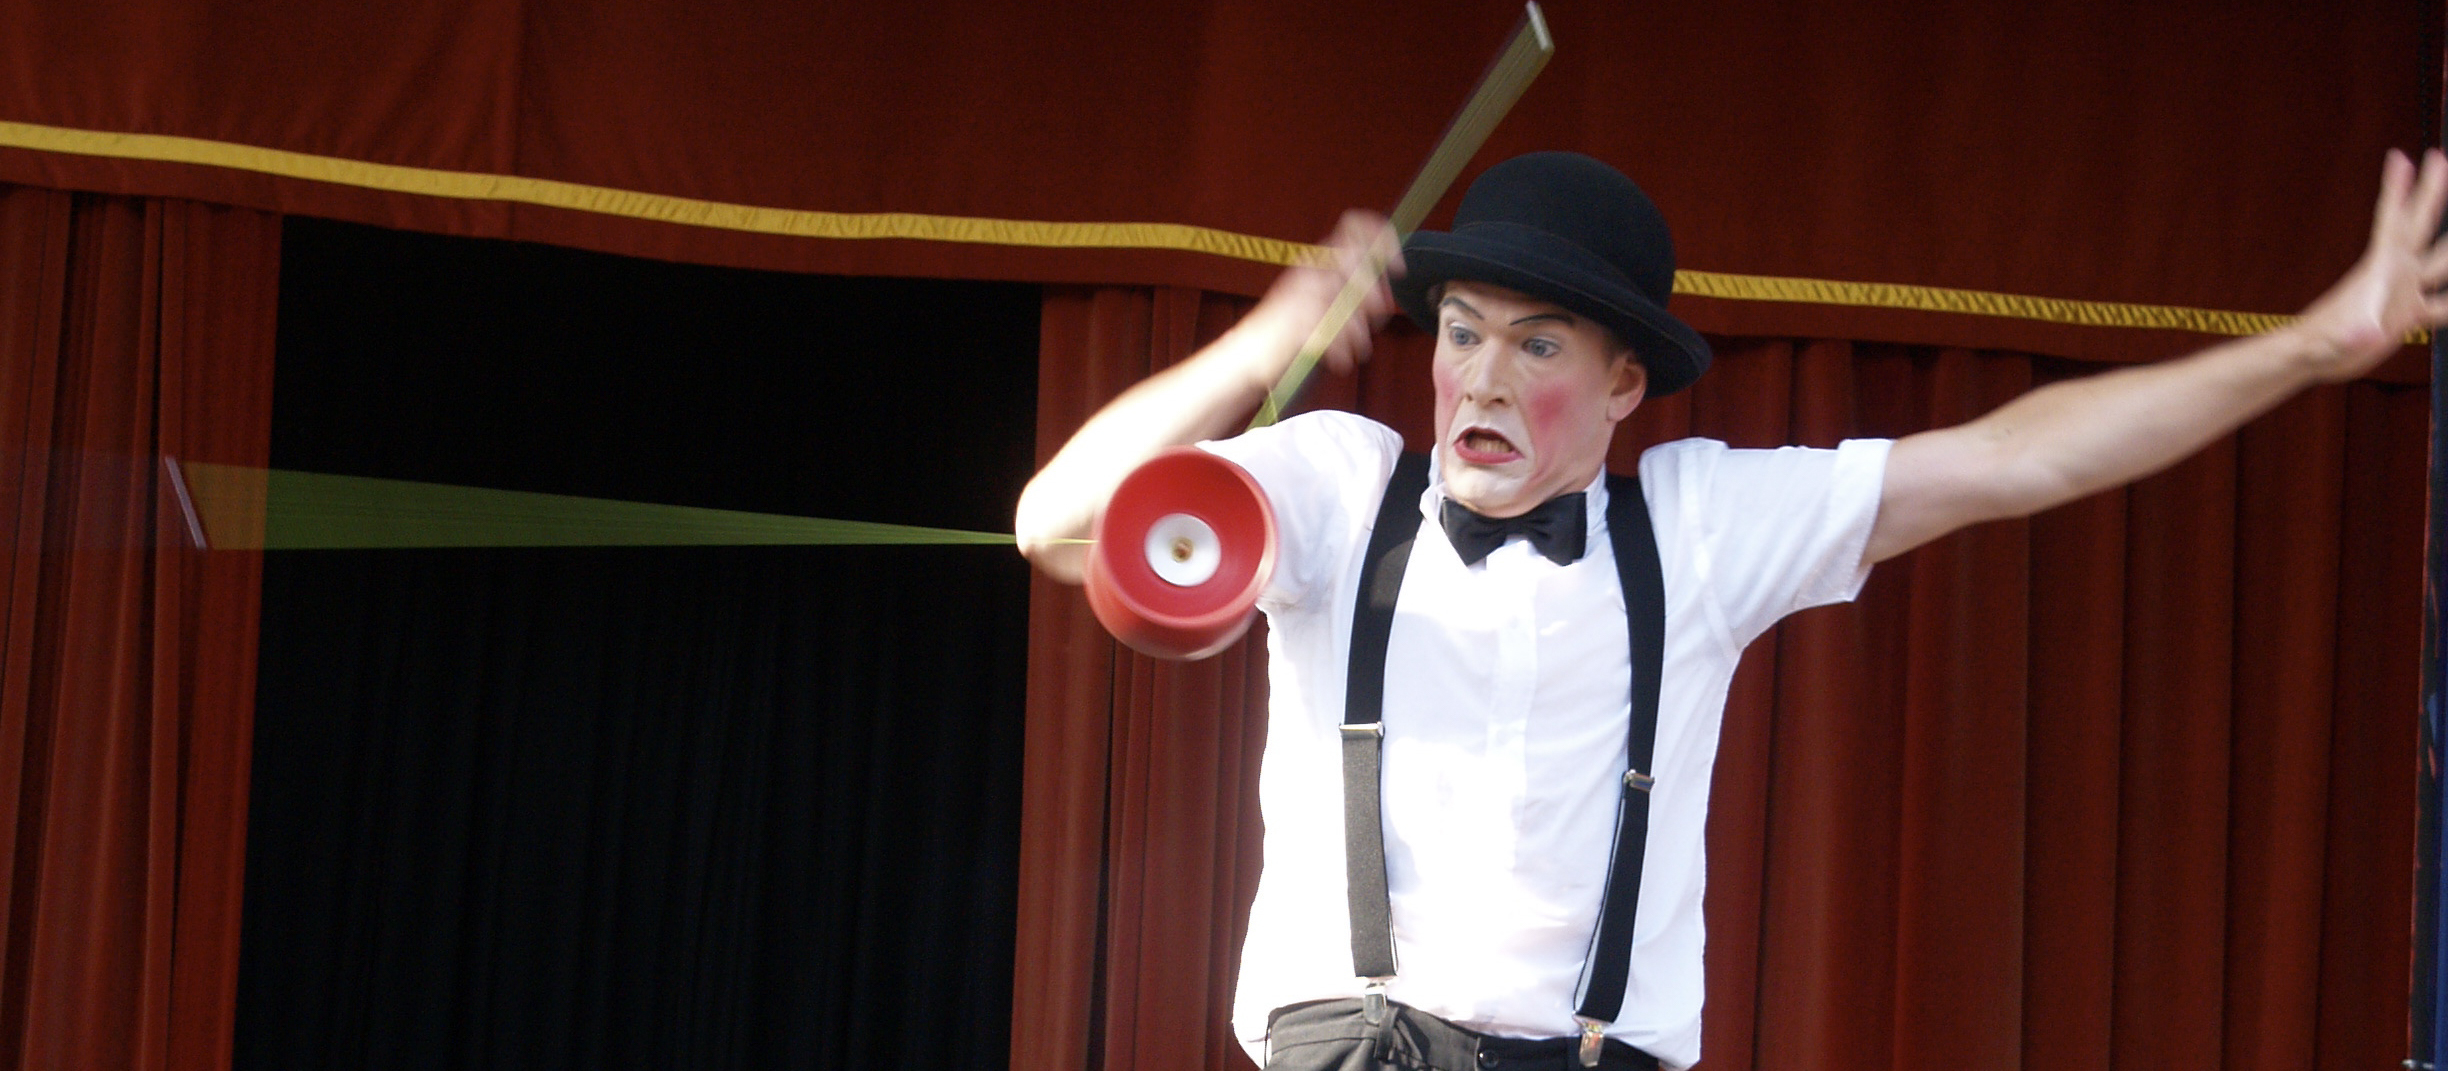 Juggling and mime show 1